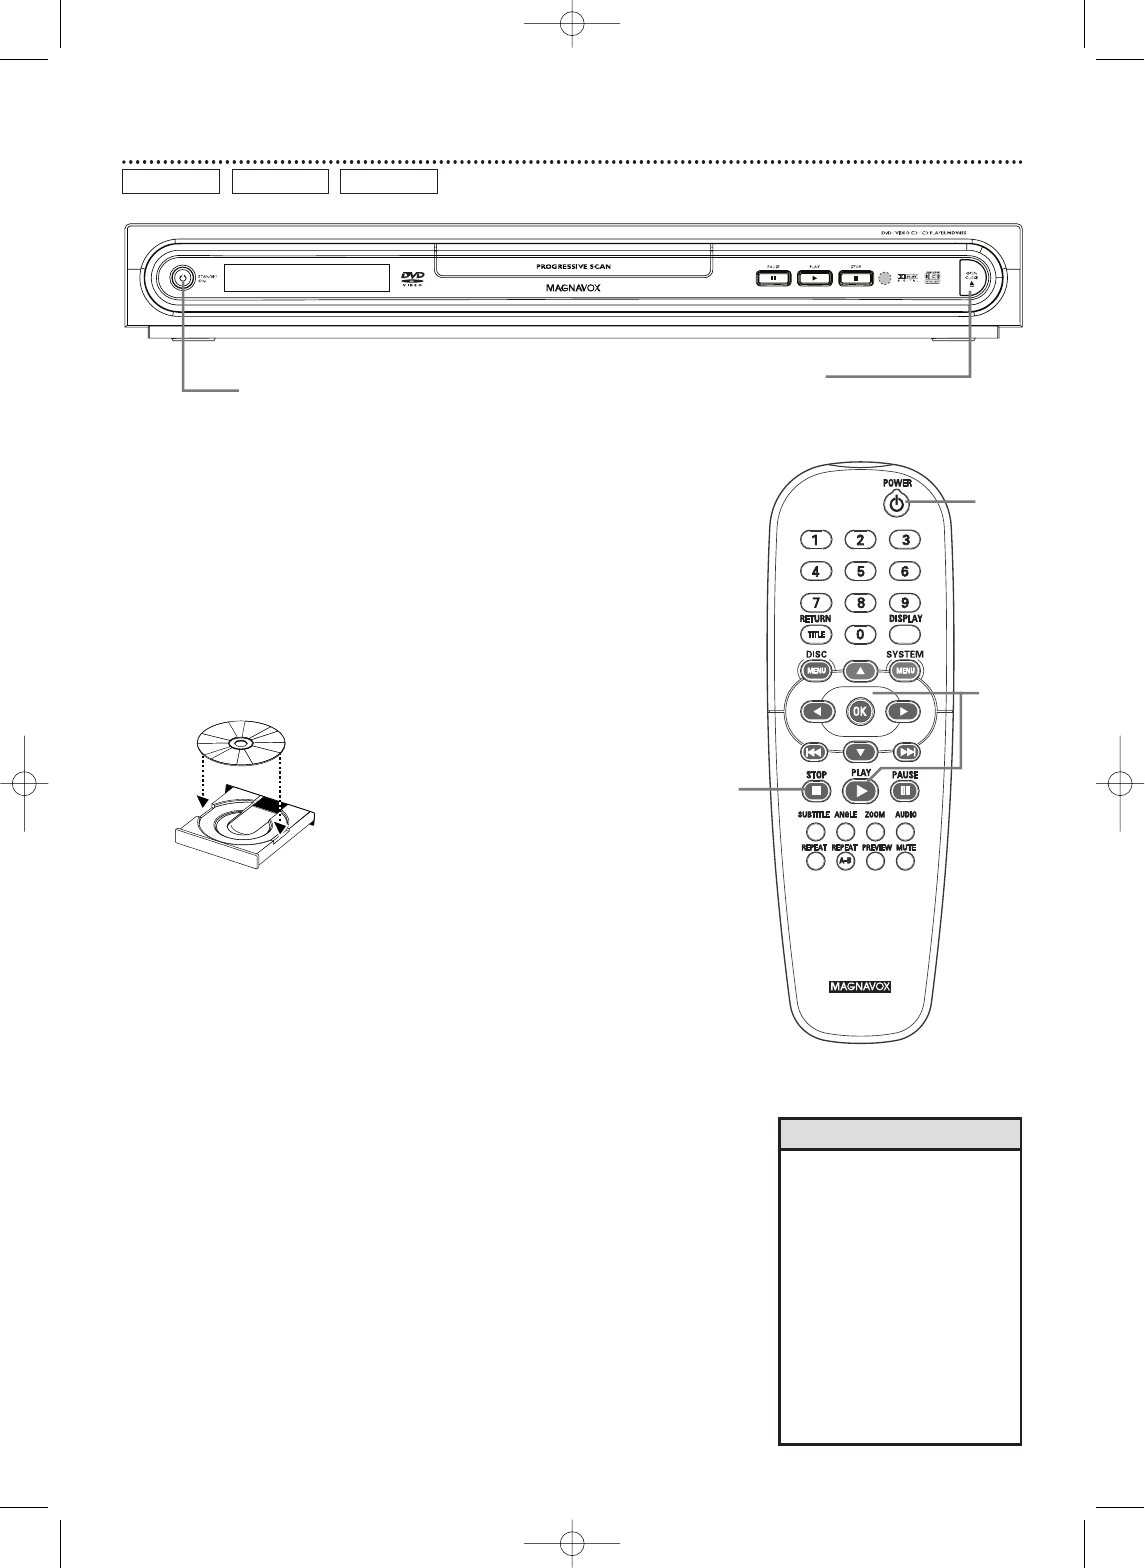 Page 16 of Magnavox DVD Player MDV455 User Guide